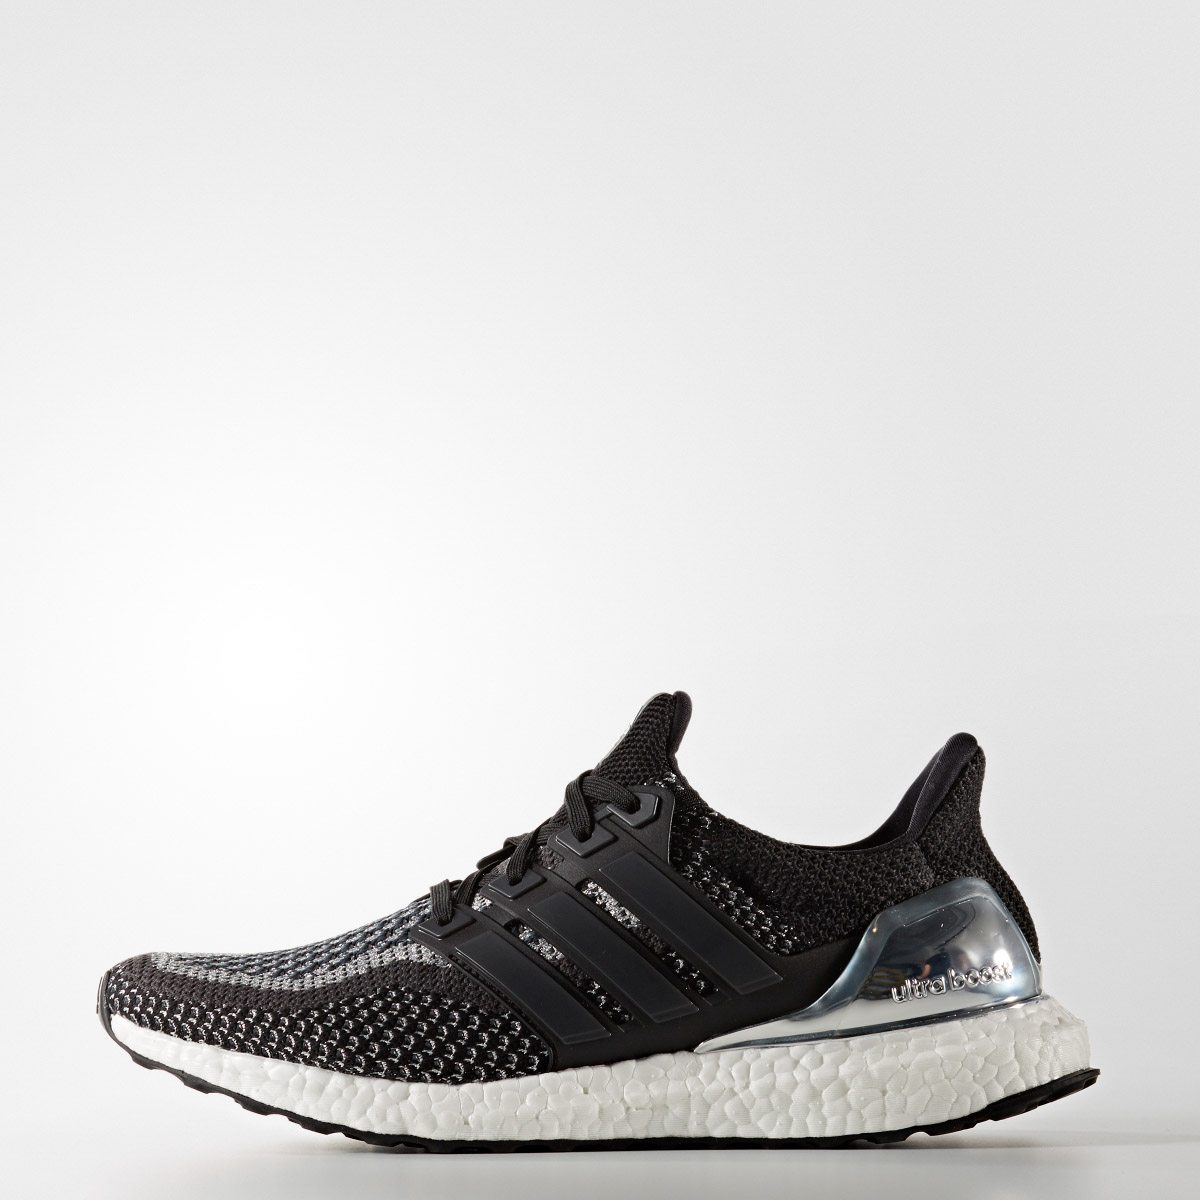 adidas Ultra Boost Metallic Pack 6